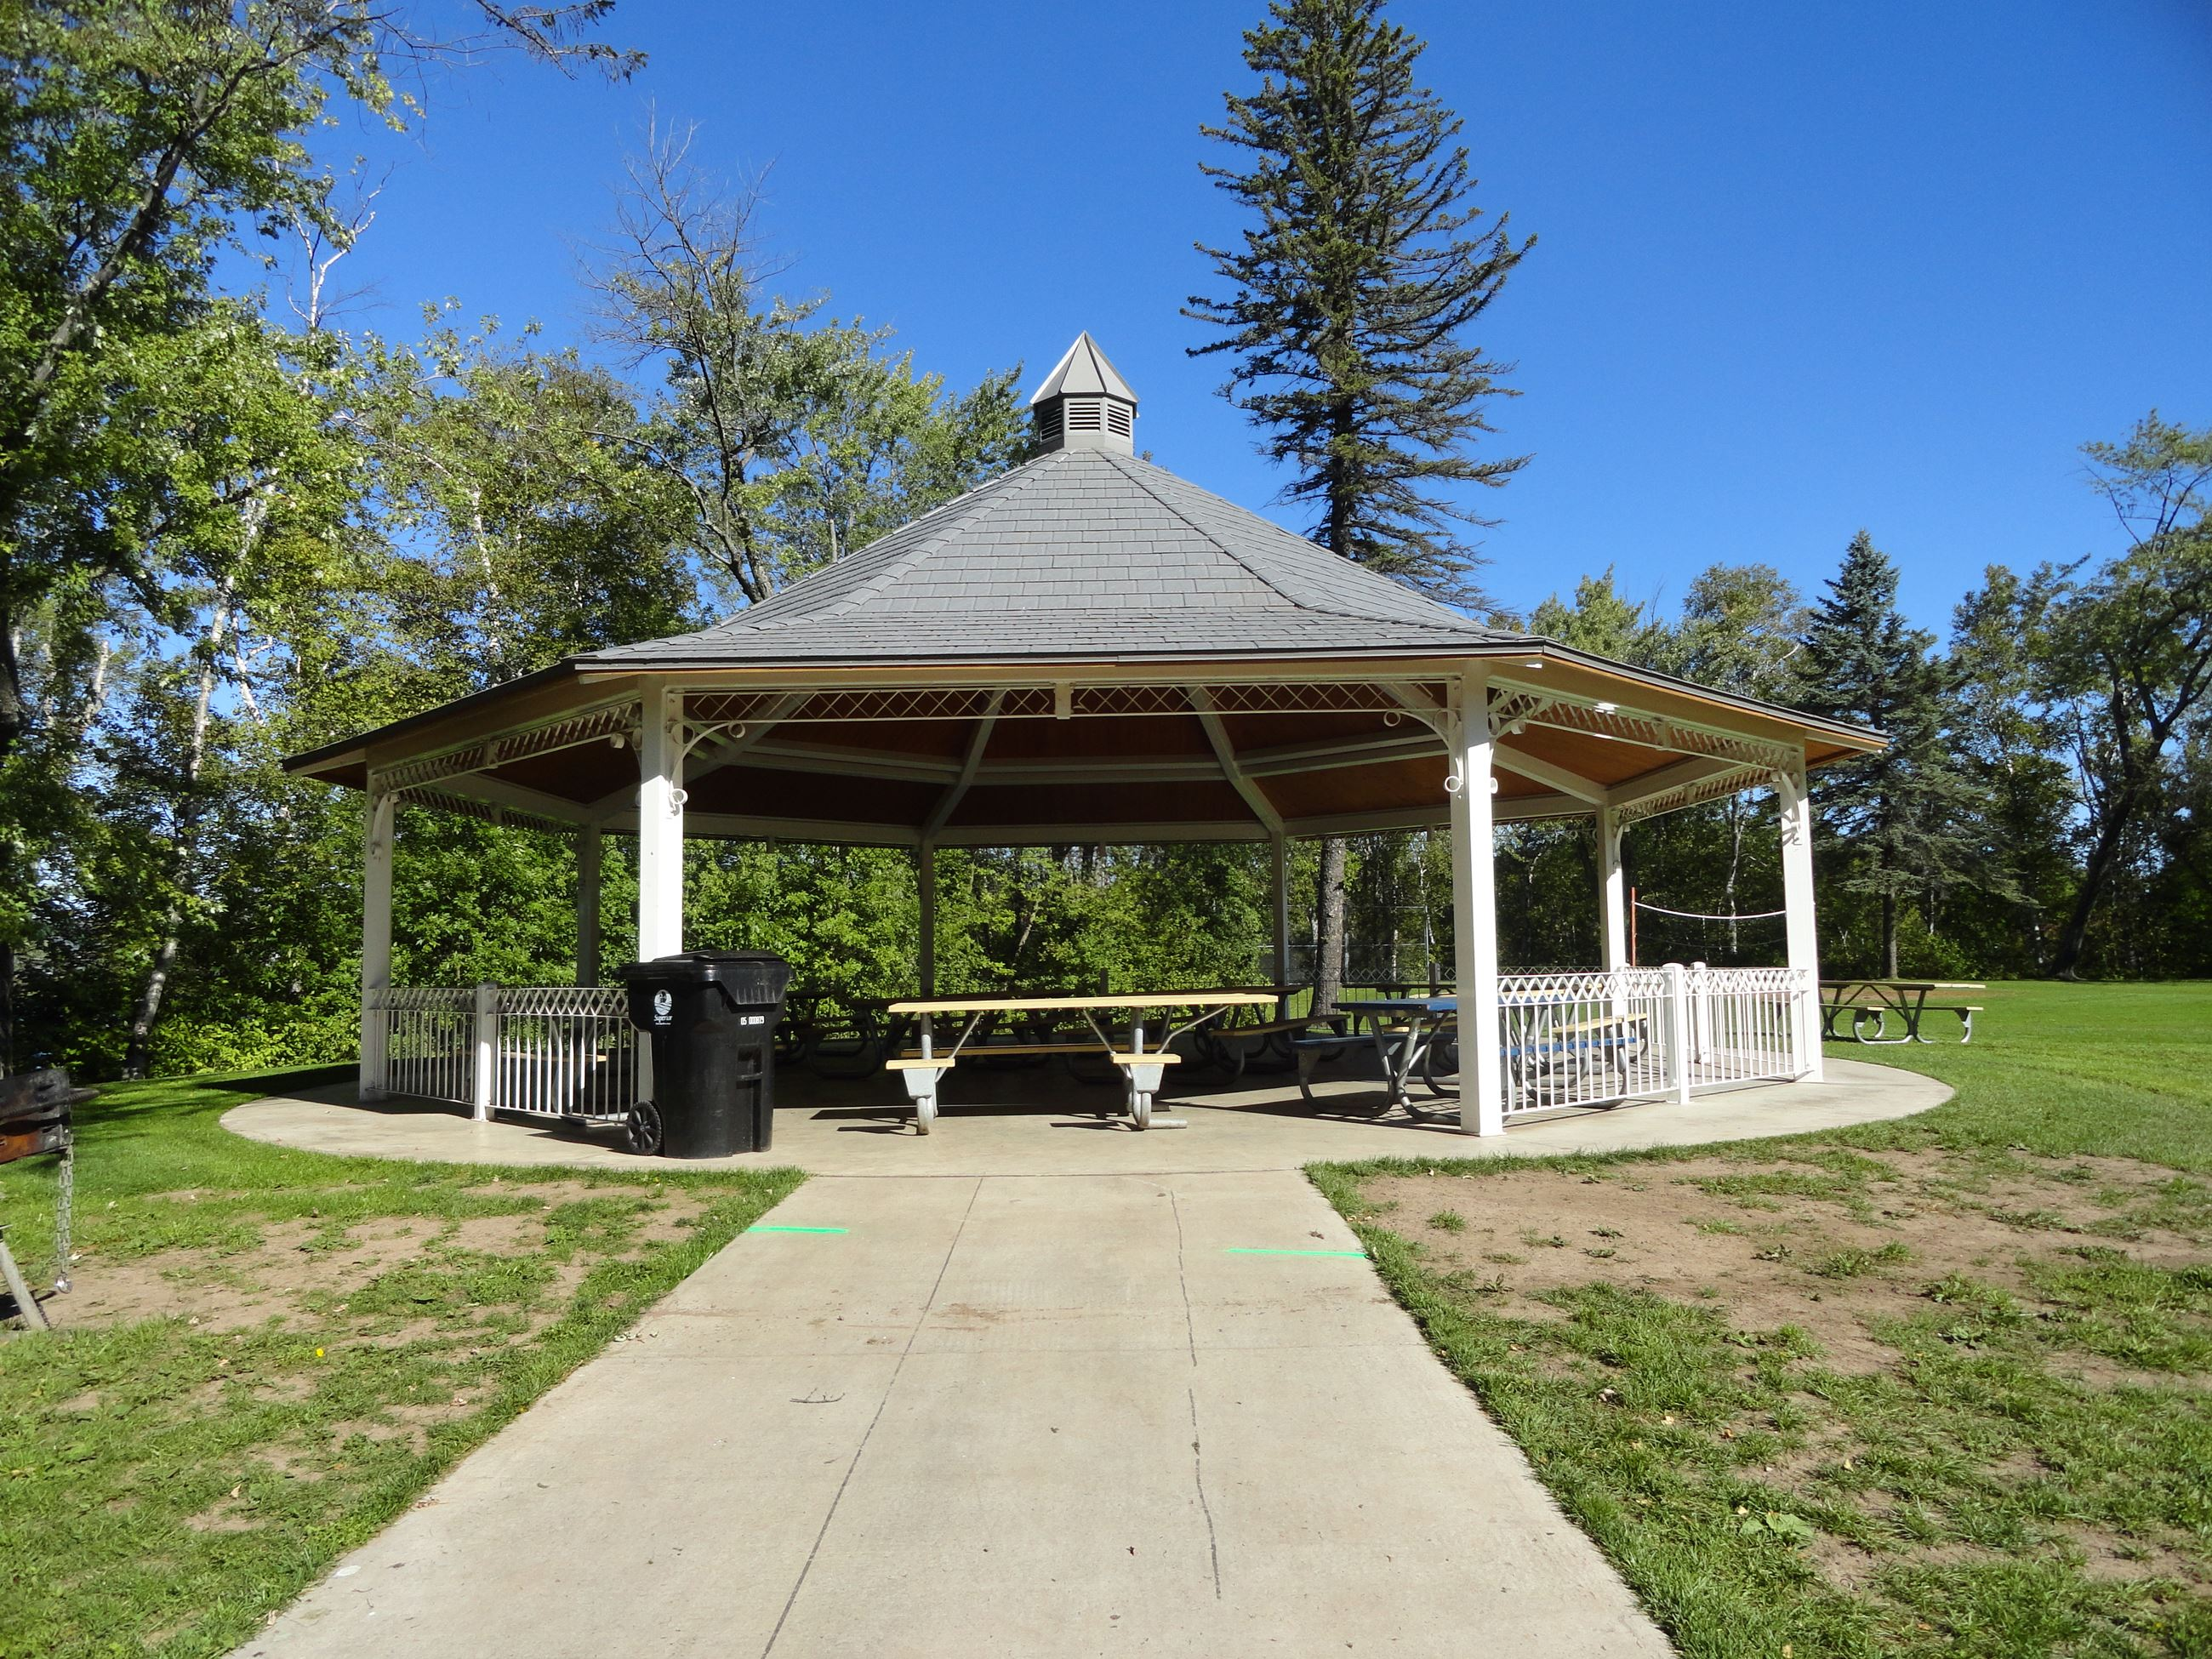 Billings Park New Pavilion